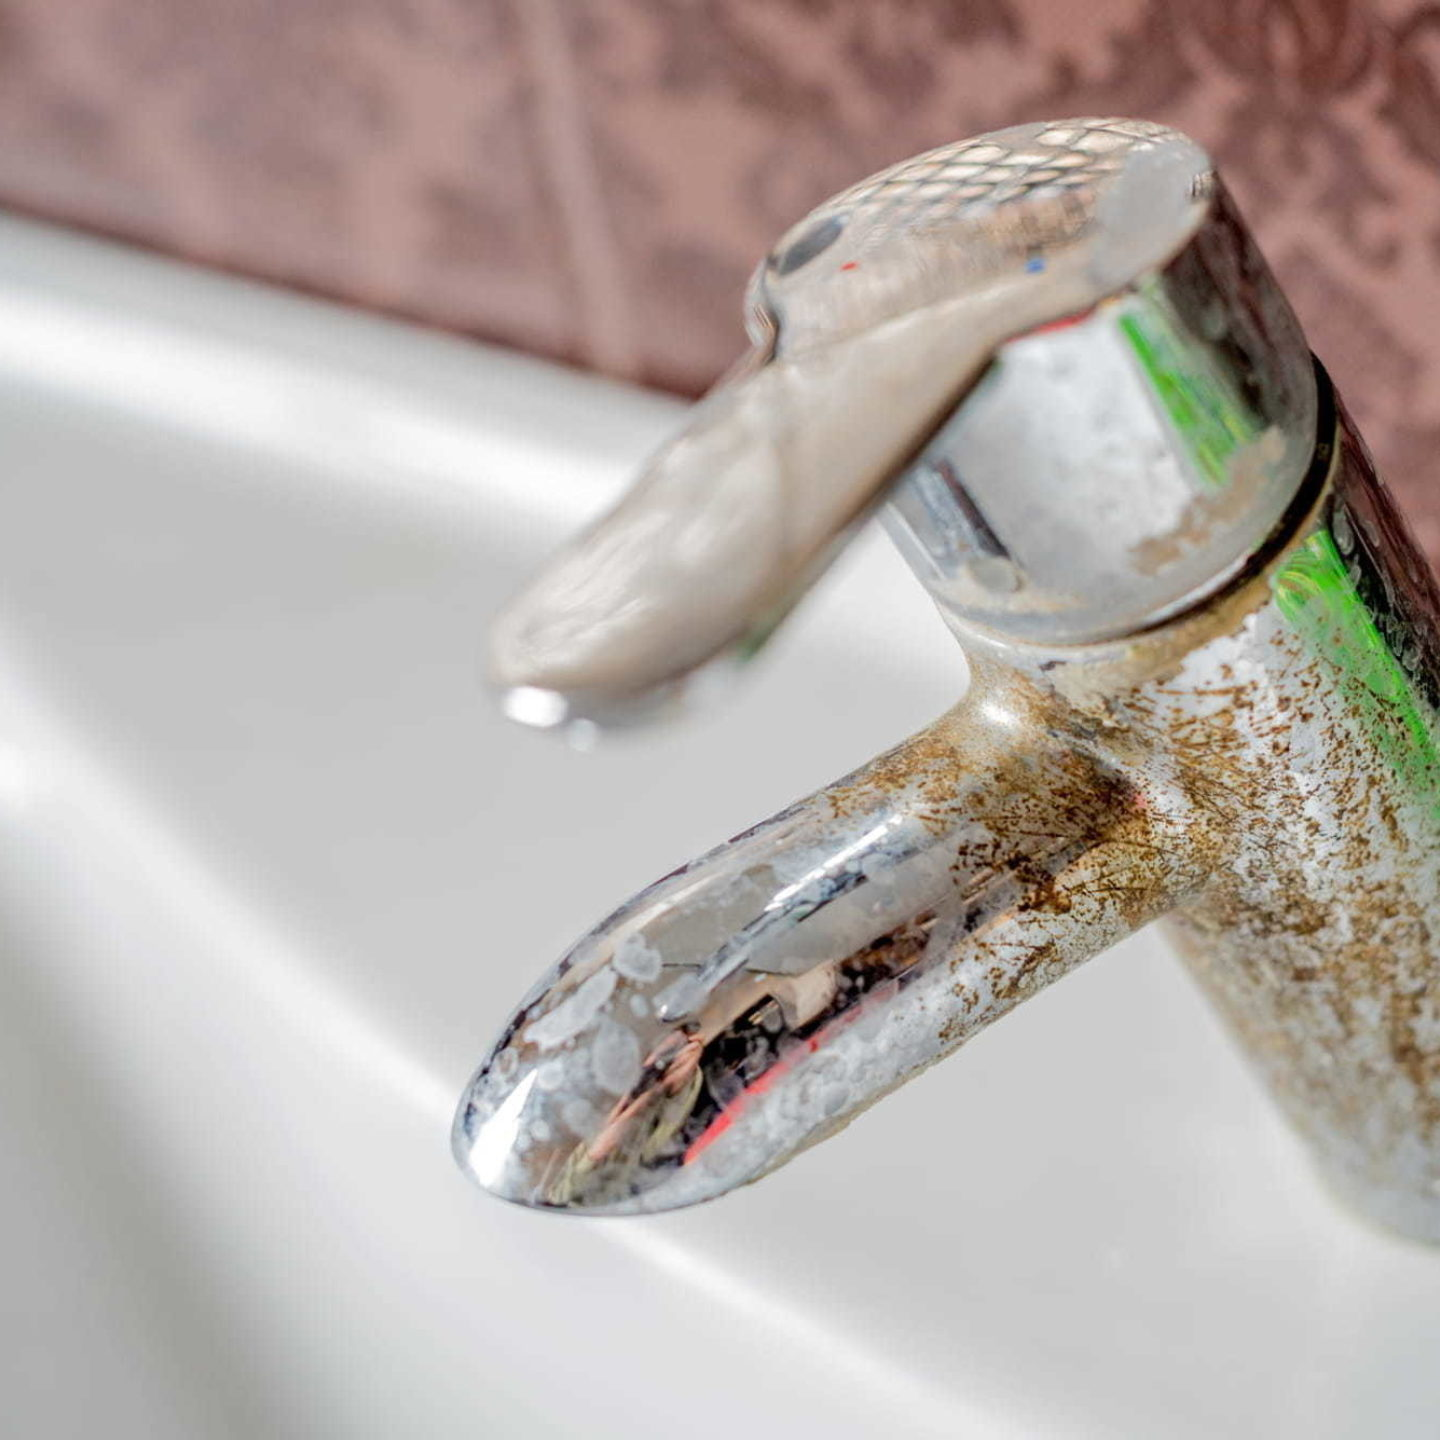 Faucet with hard water - The Hard Facts About Water - Our Softening Tips | NSF International